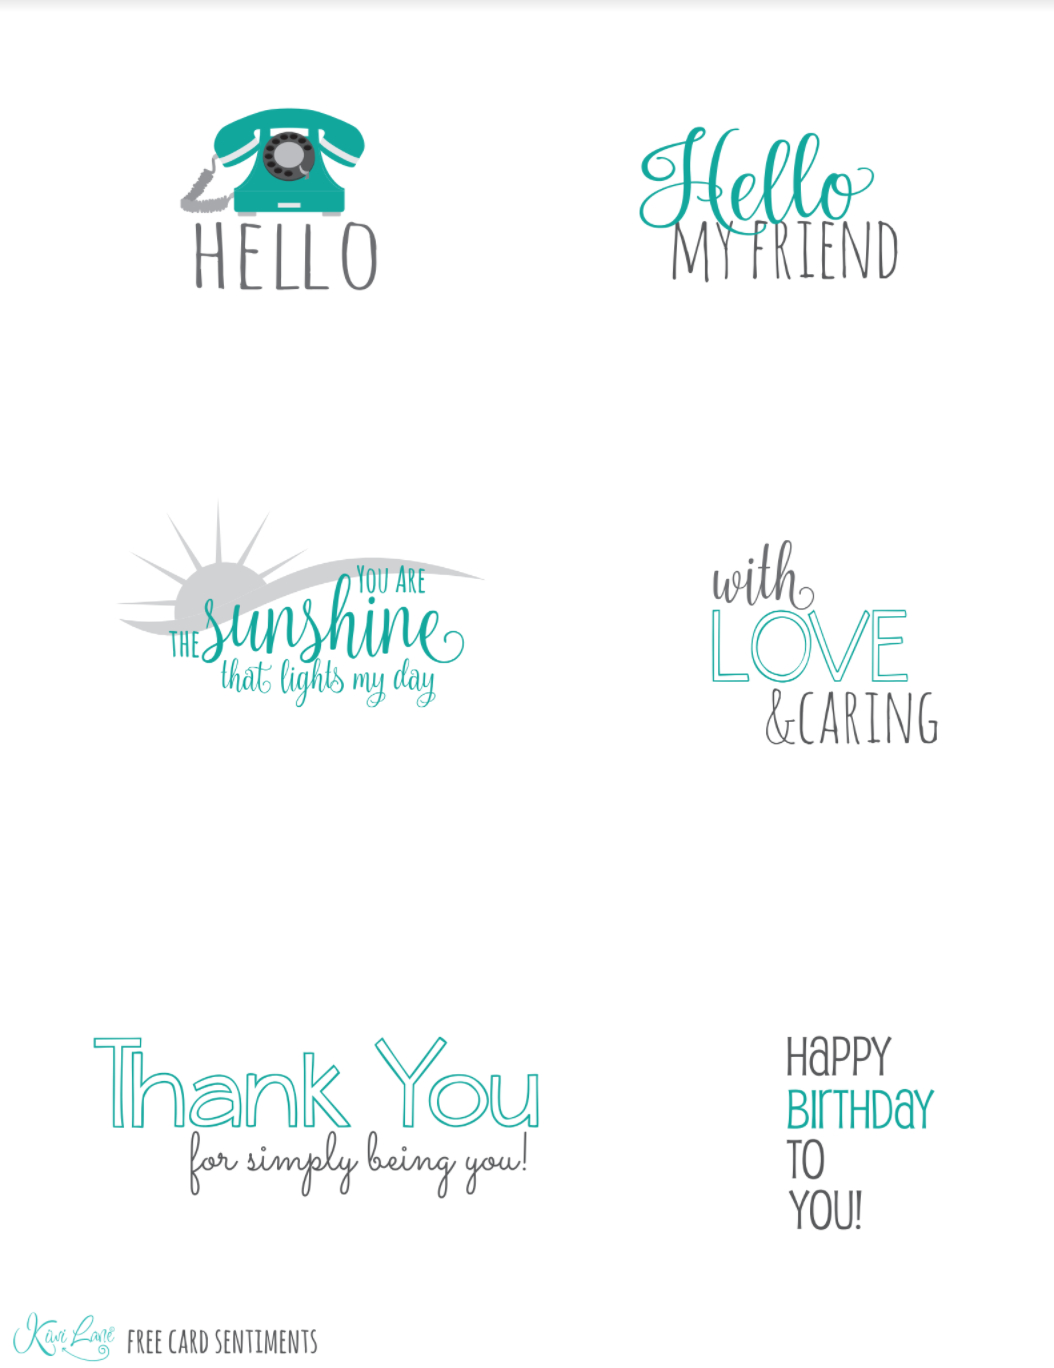 Buy 3 Get 1 Free Kwik Card Kits | Free Printables | Kiwi Lane - Free Printable Greeting Card Sentiments